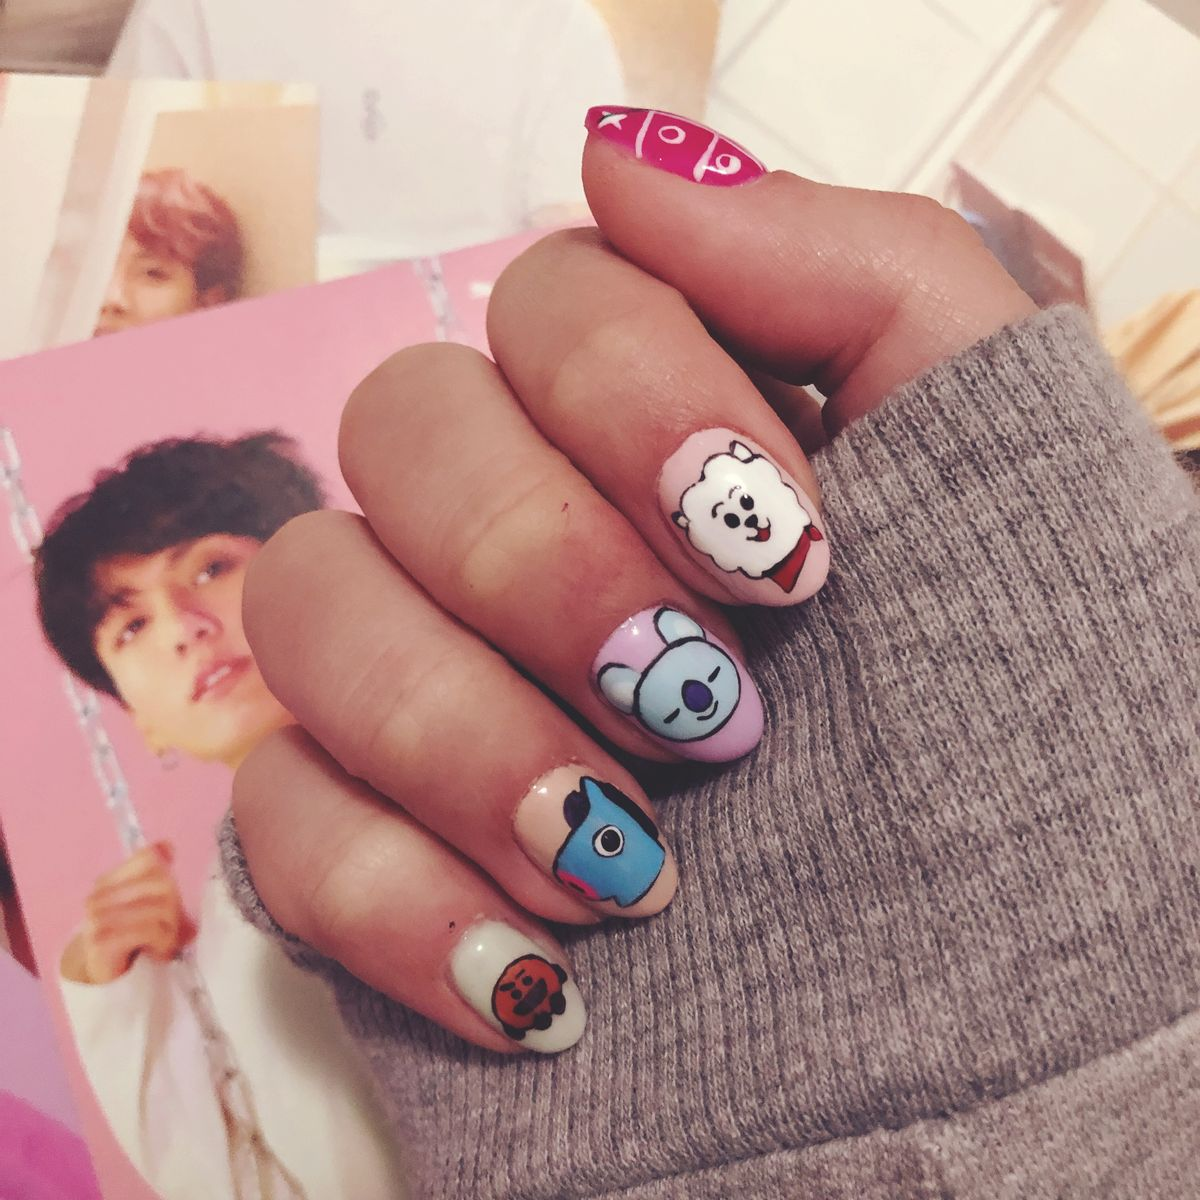 #nails #nailart #bts #bt21   I really have the best nail artist in the world. I'm in love with my new bt21 nails!